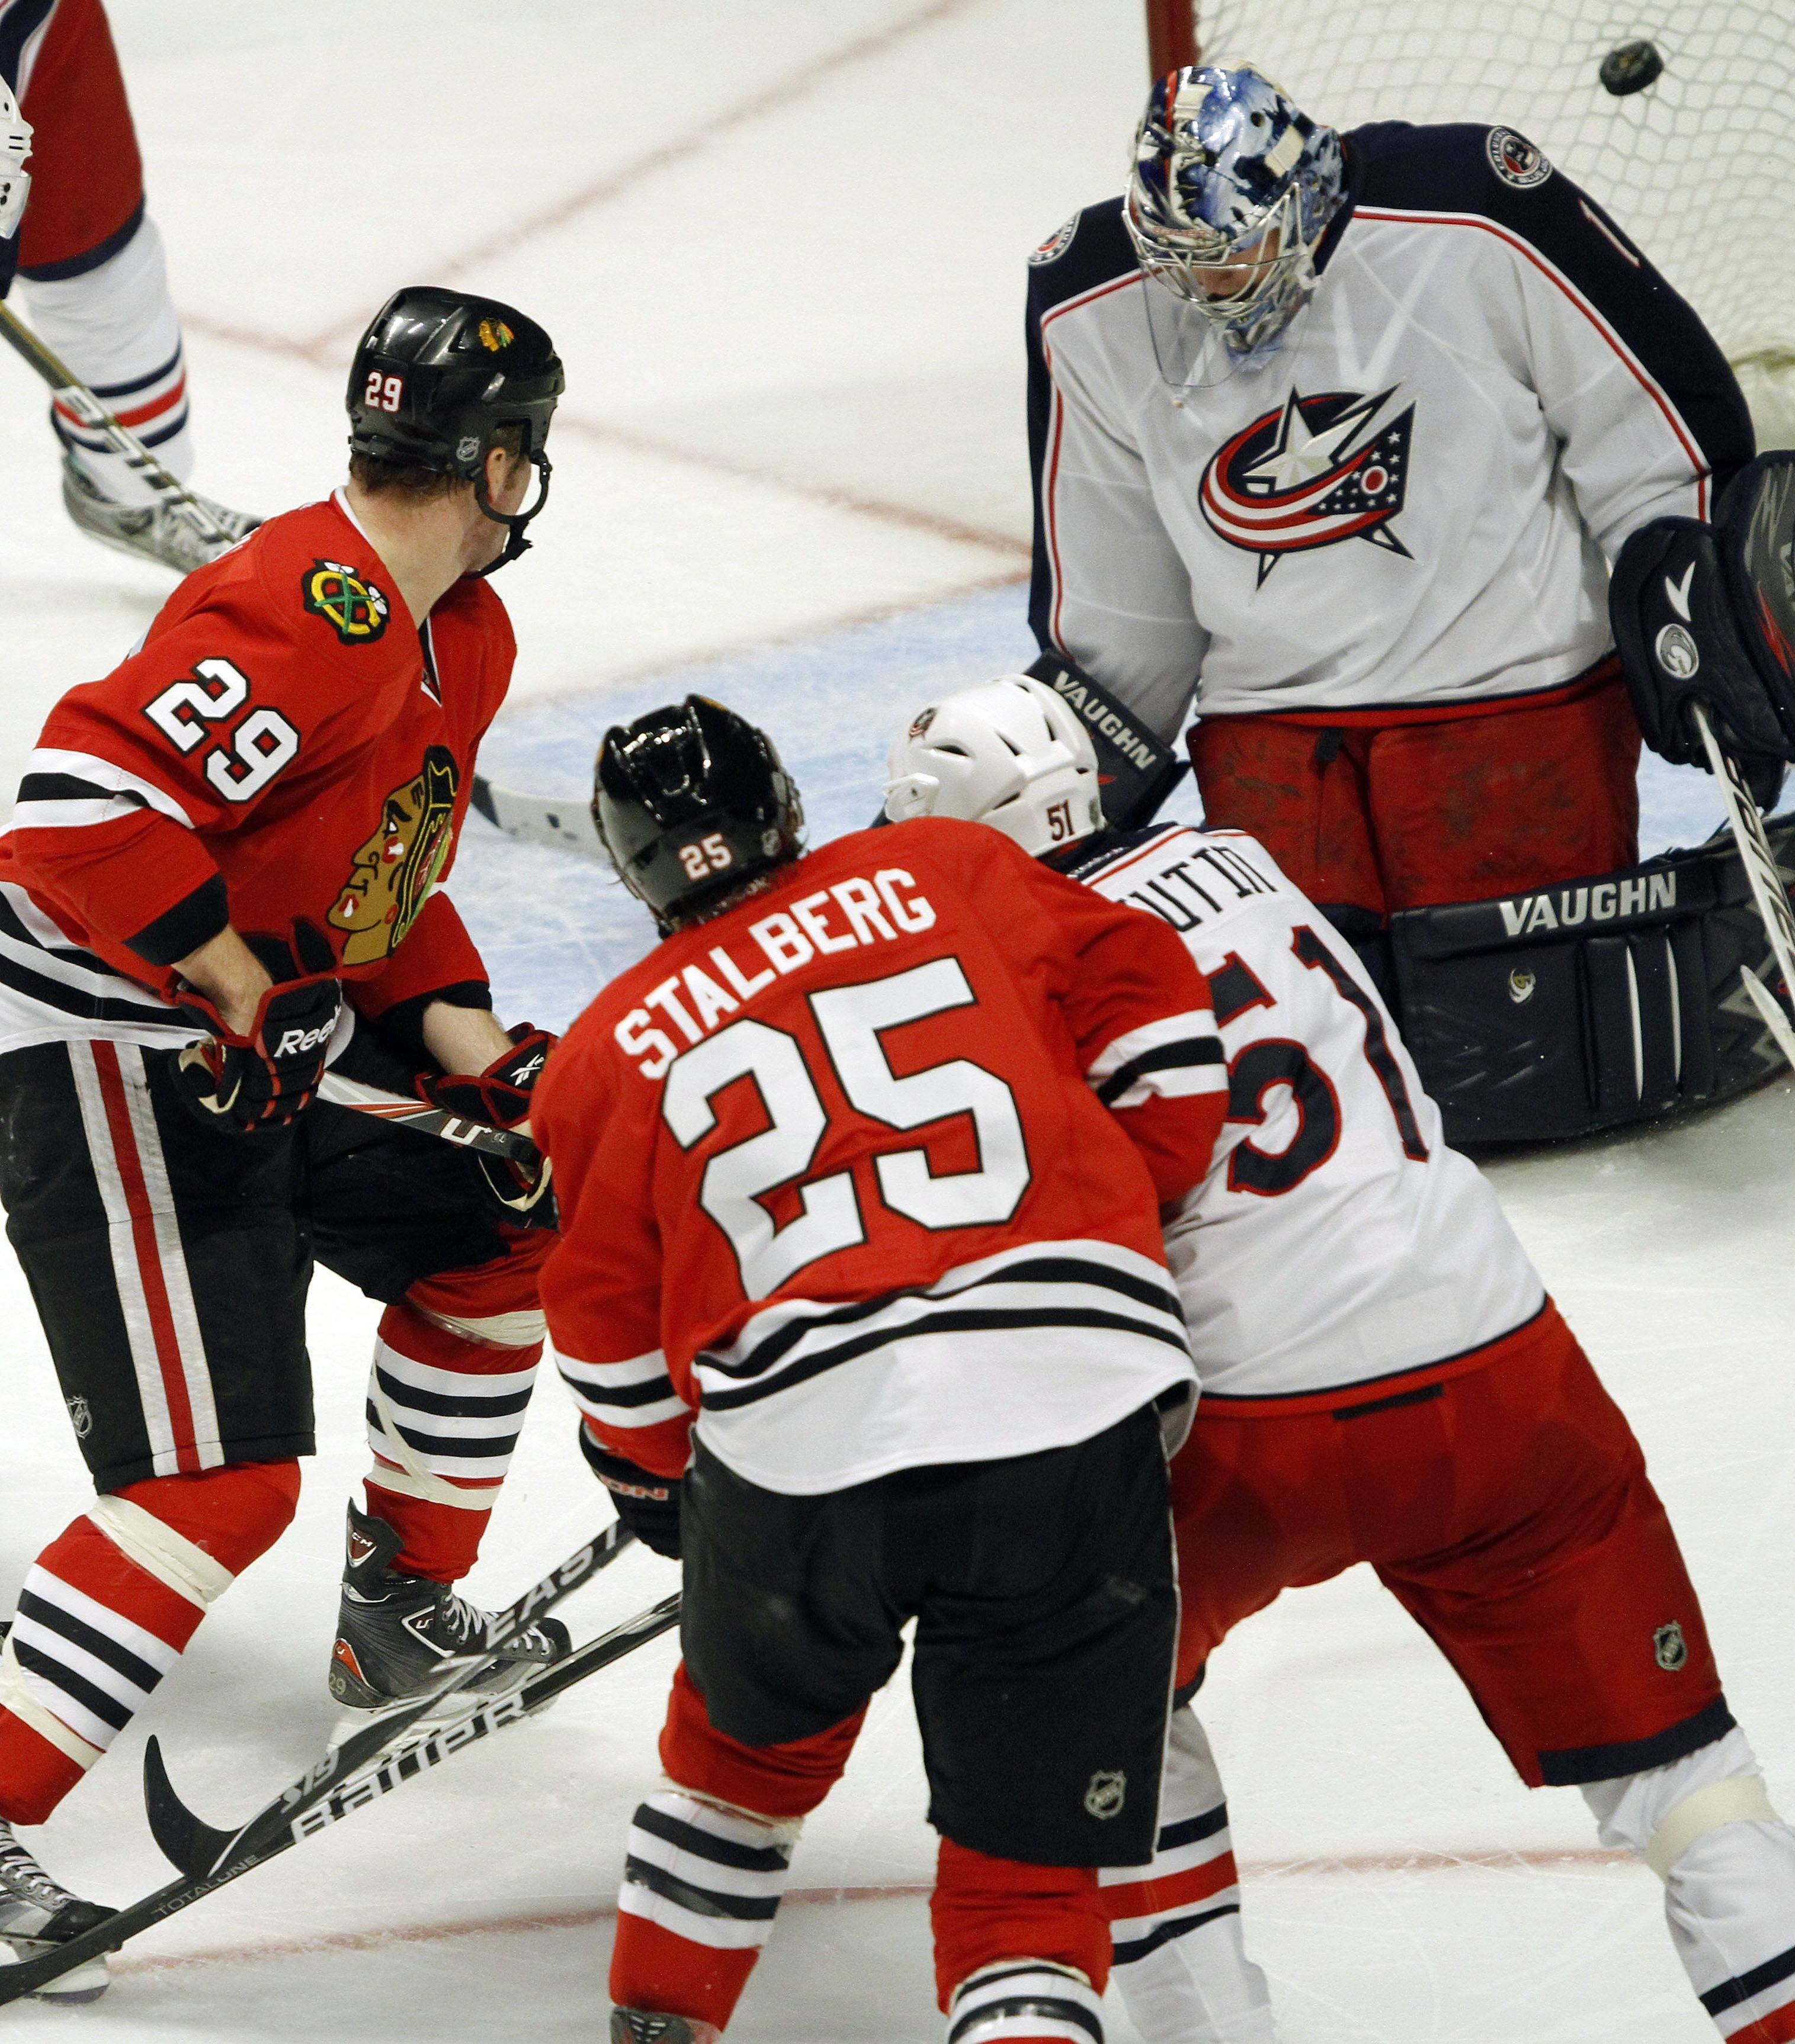 Chicago Blackhawks left wing Viktor Stalberg's shot makes it past Columbus Blue Jackets goalie Steve Mason for his second goal of the second period during their game Monday night at the United Center in Chicago.